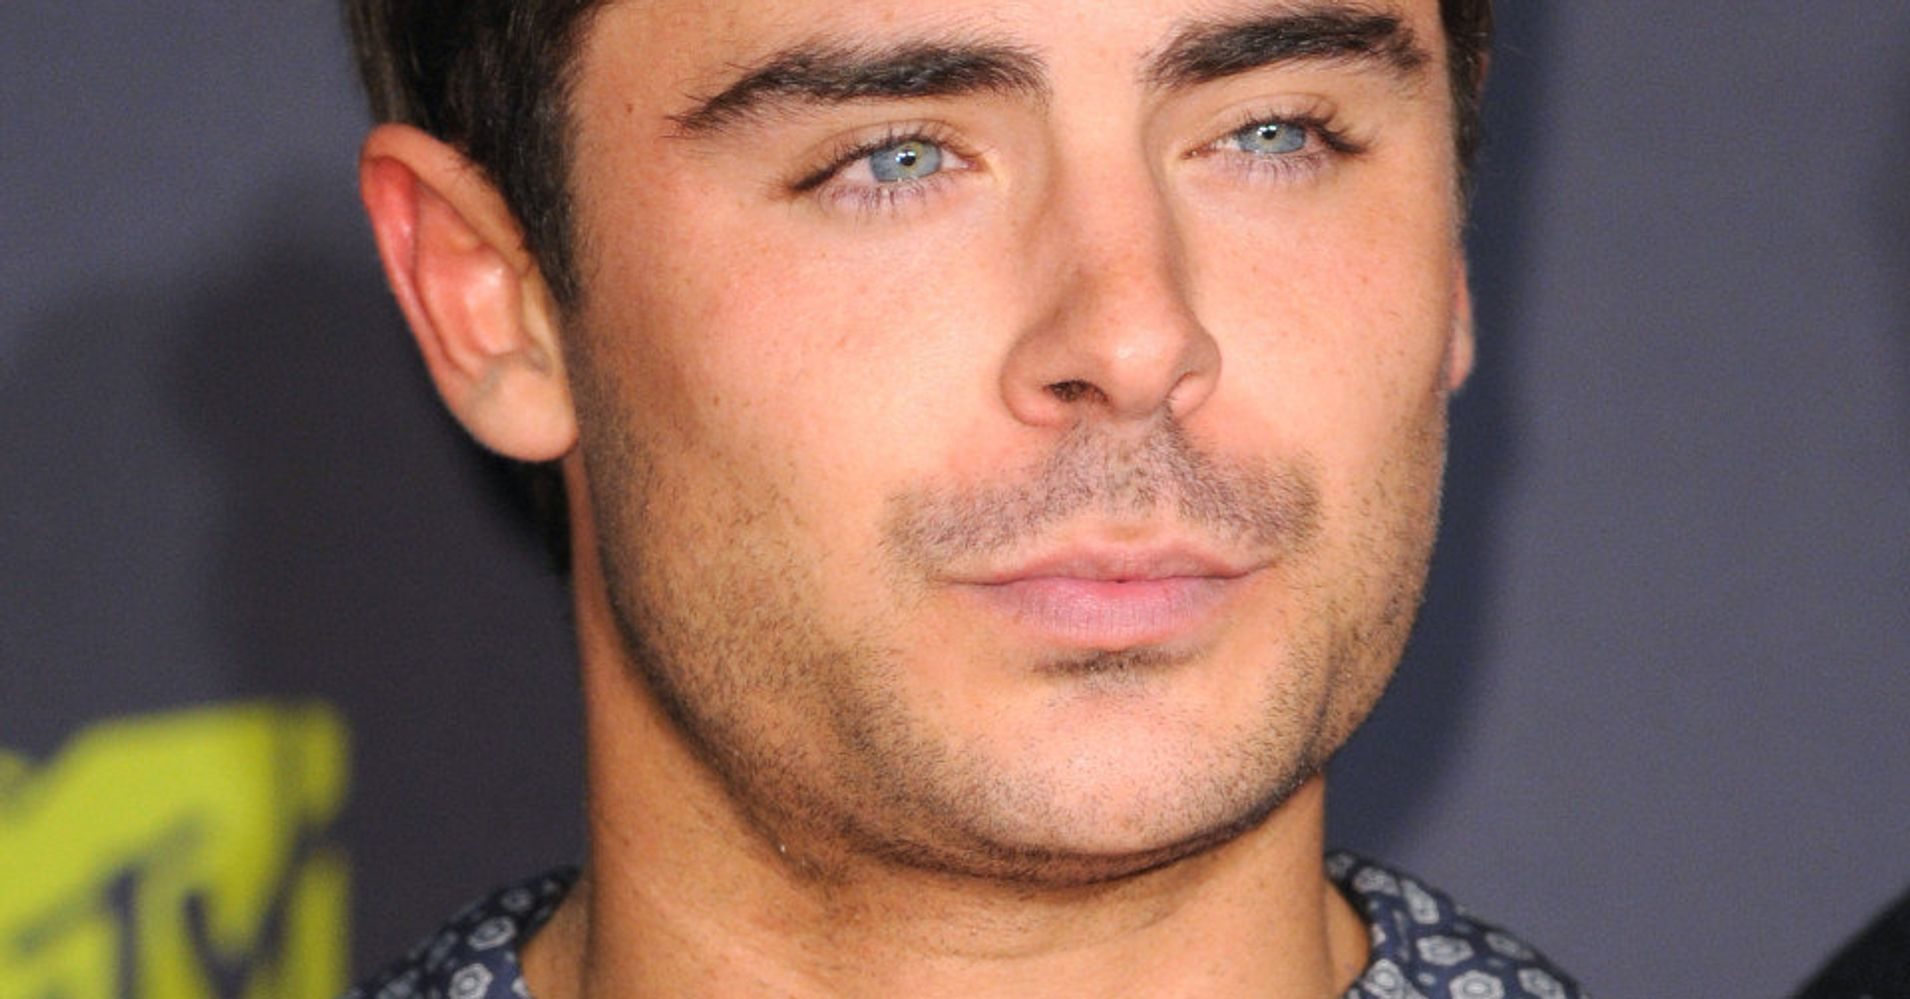 Zac Efron Has Mouth Wired Shut After Breaking Jaw | HuffPost